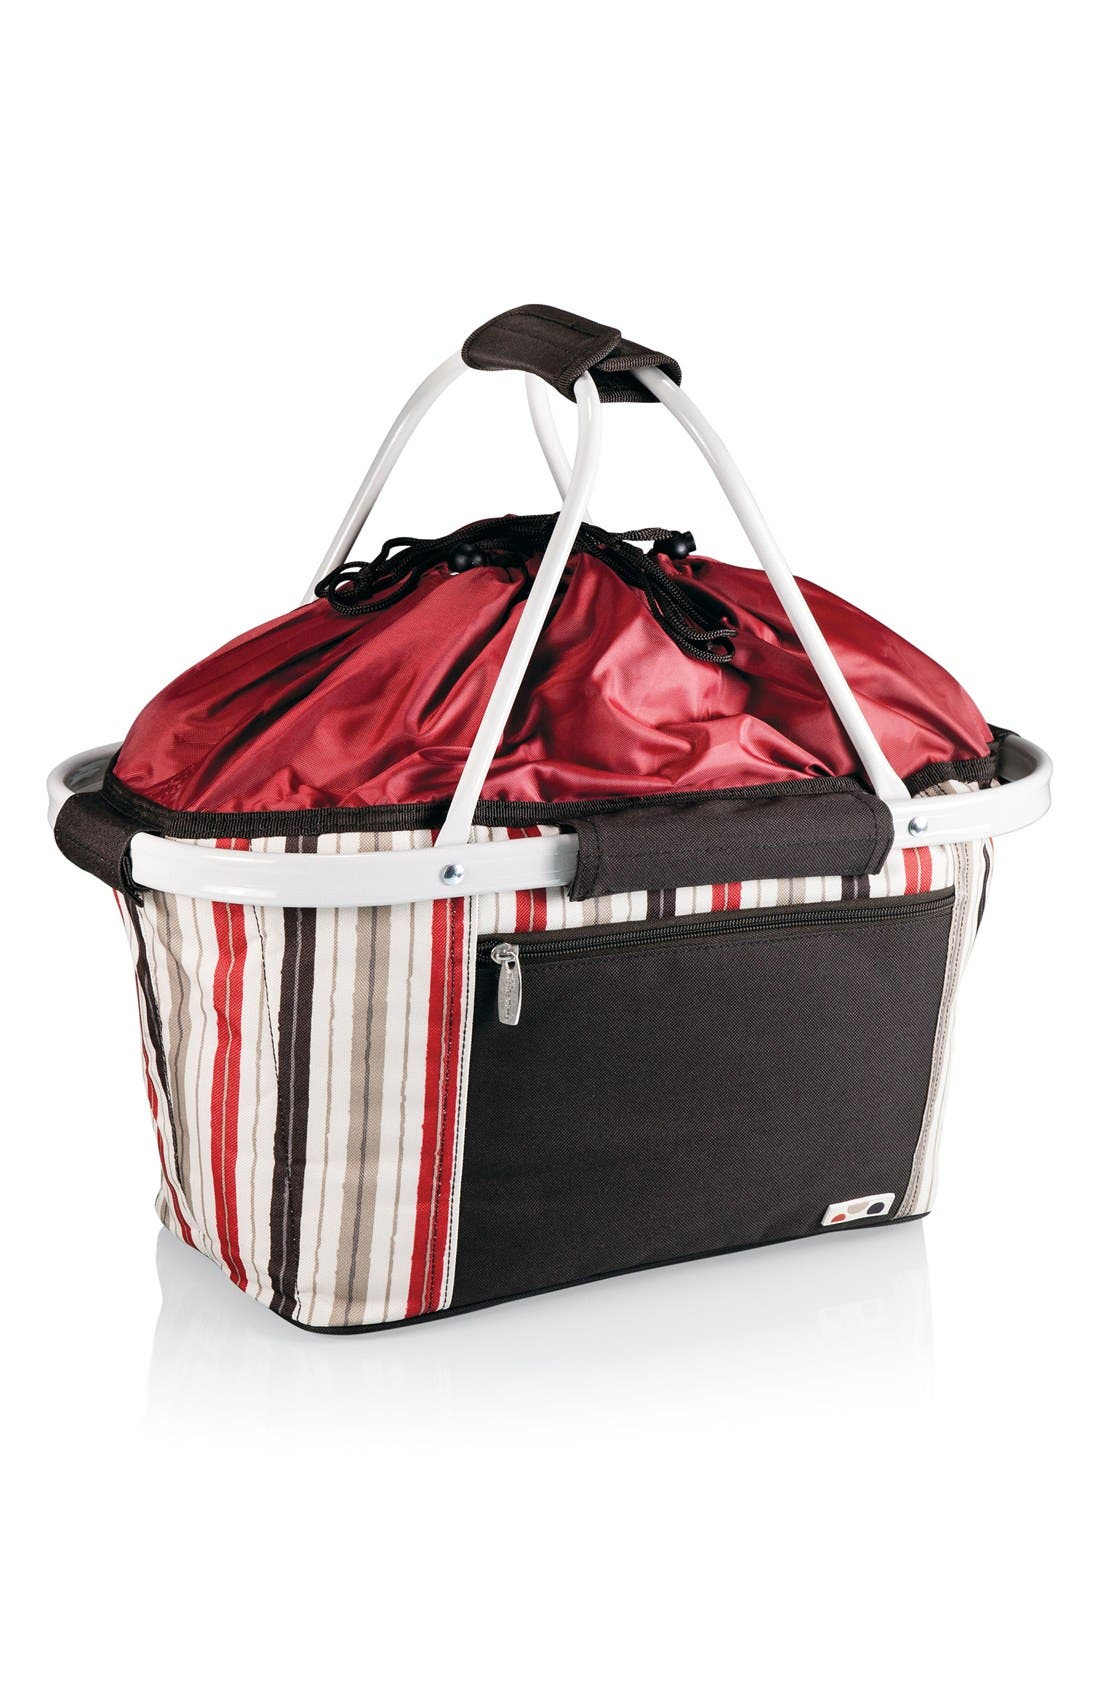 PICNIC TIME 'Metro Basket' Collapsible Tote